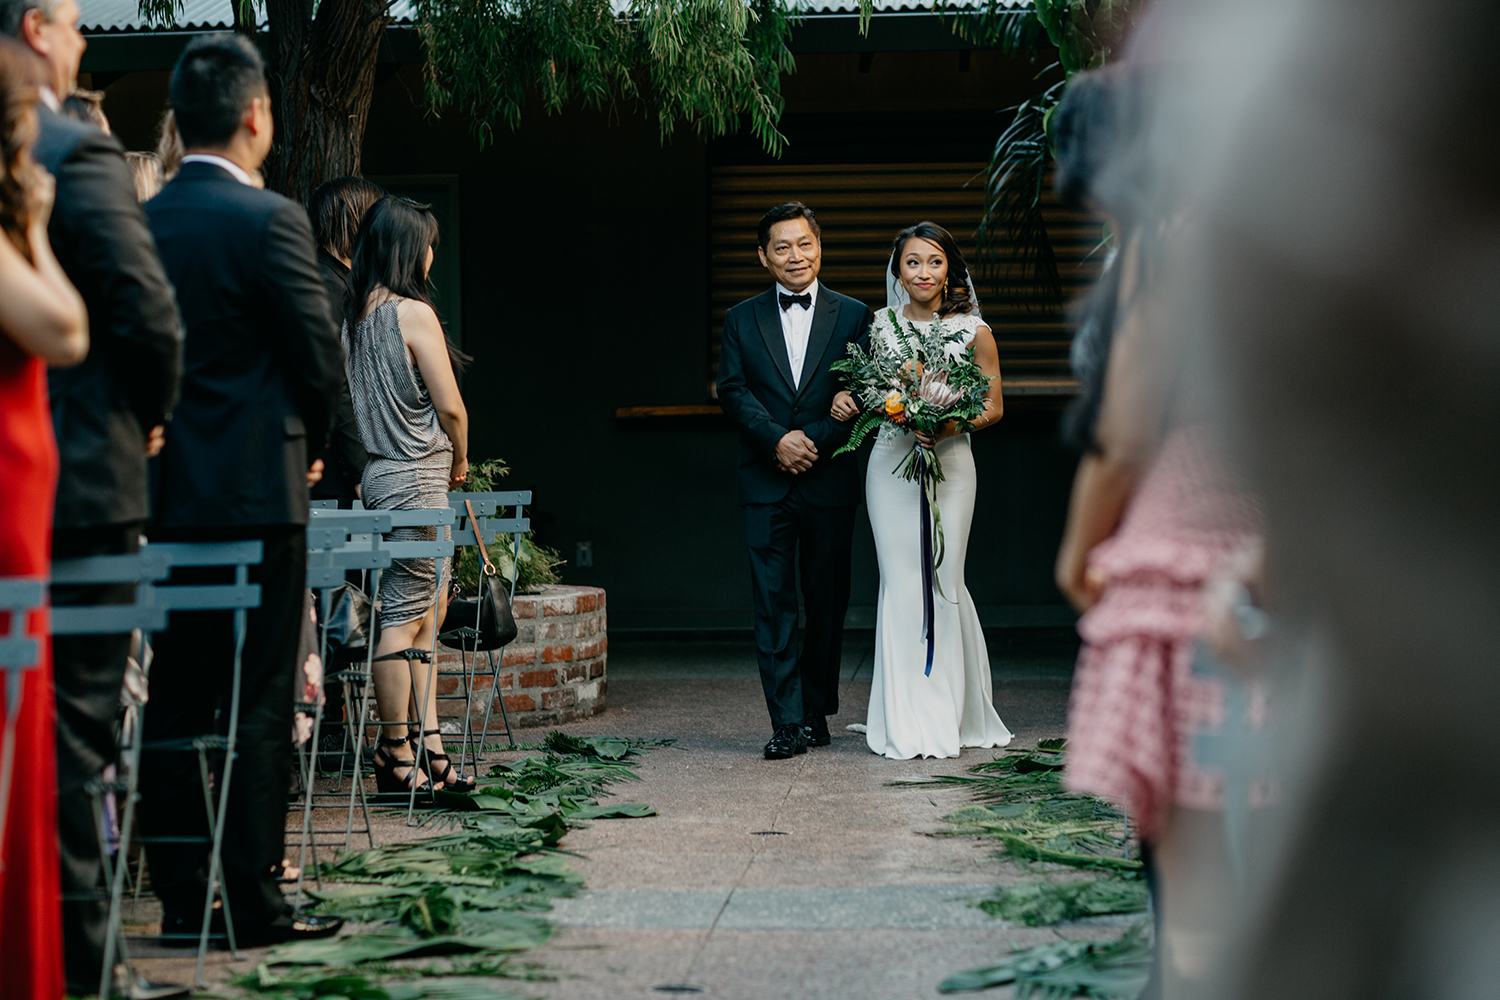 Terry + Nancy Millwick Wedding / Modern Los Angeles Wedding / LA Wedding / Moody Photography / Moody Wedding / DTLA Wedding / Millwick / Rachel Gulotta Photography / Lucky Day Events Co.